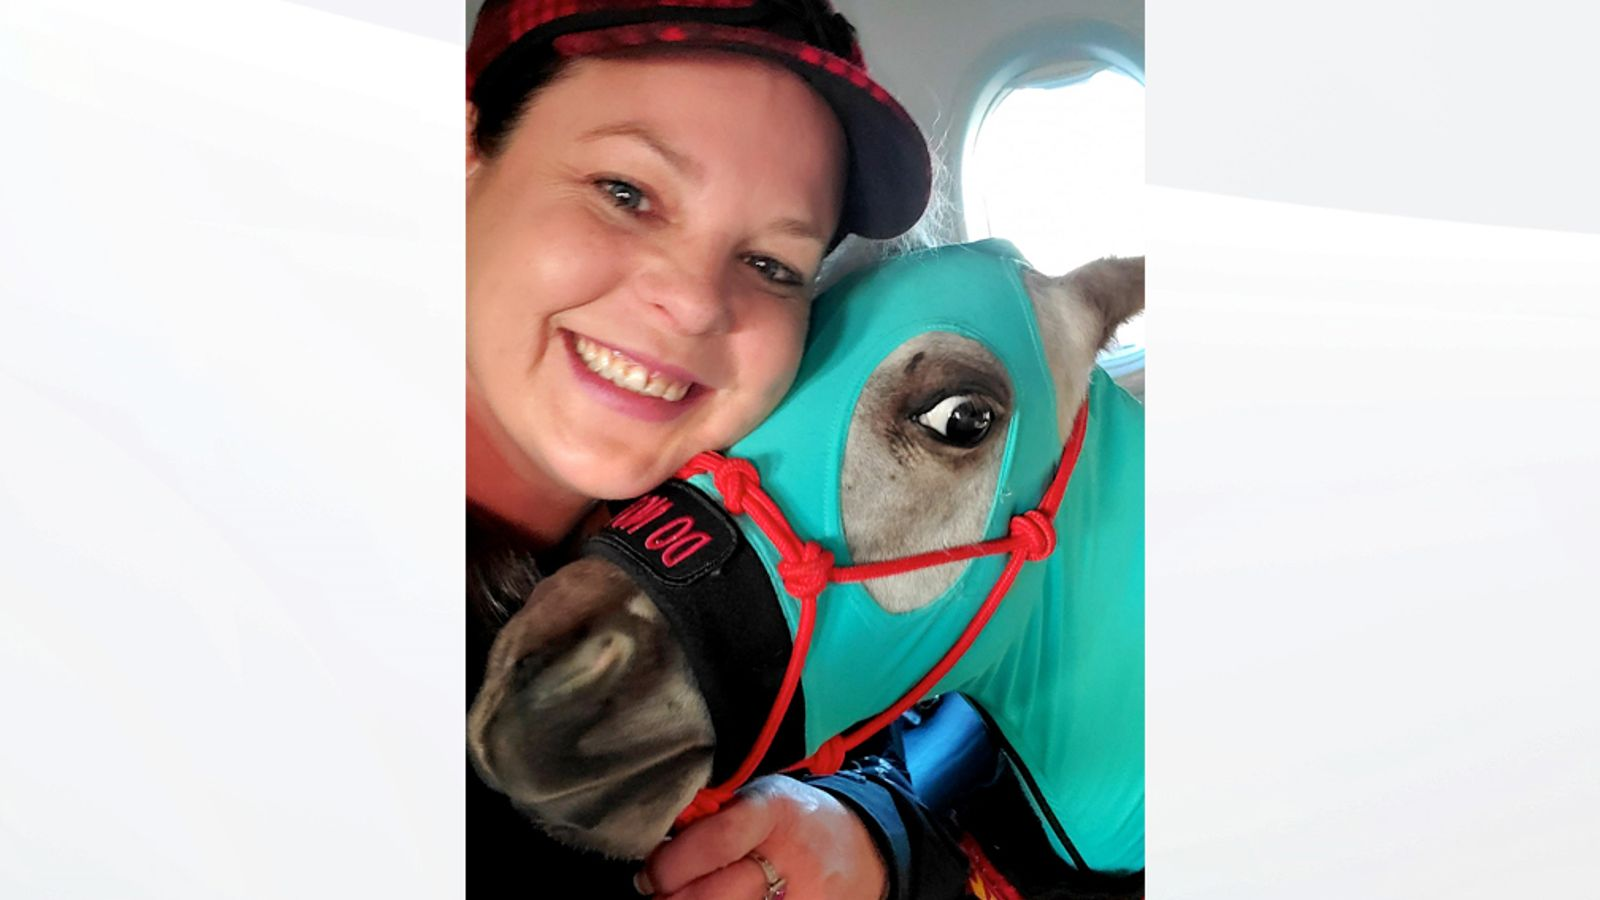 Miniature horse called Fred travels first class on American Airlines flight